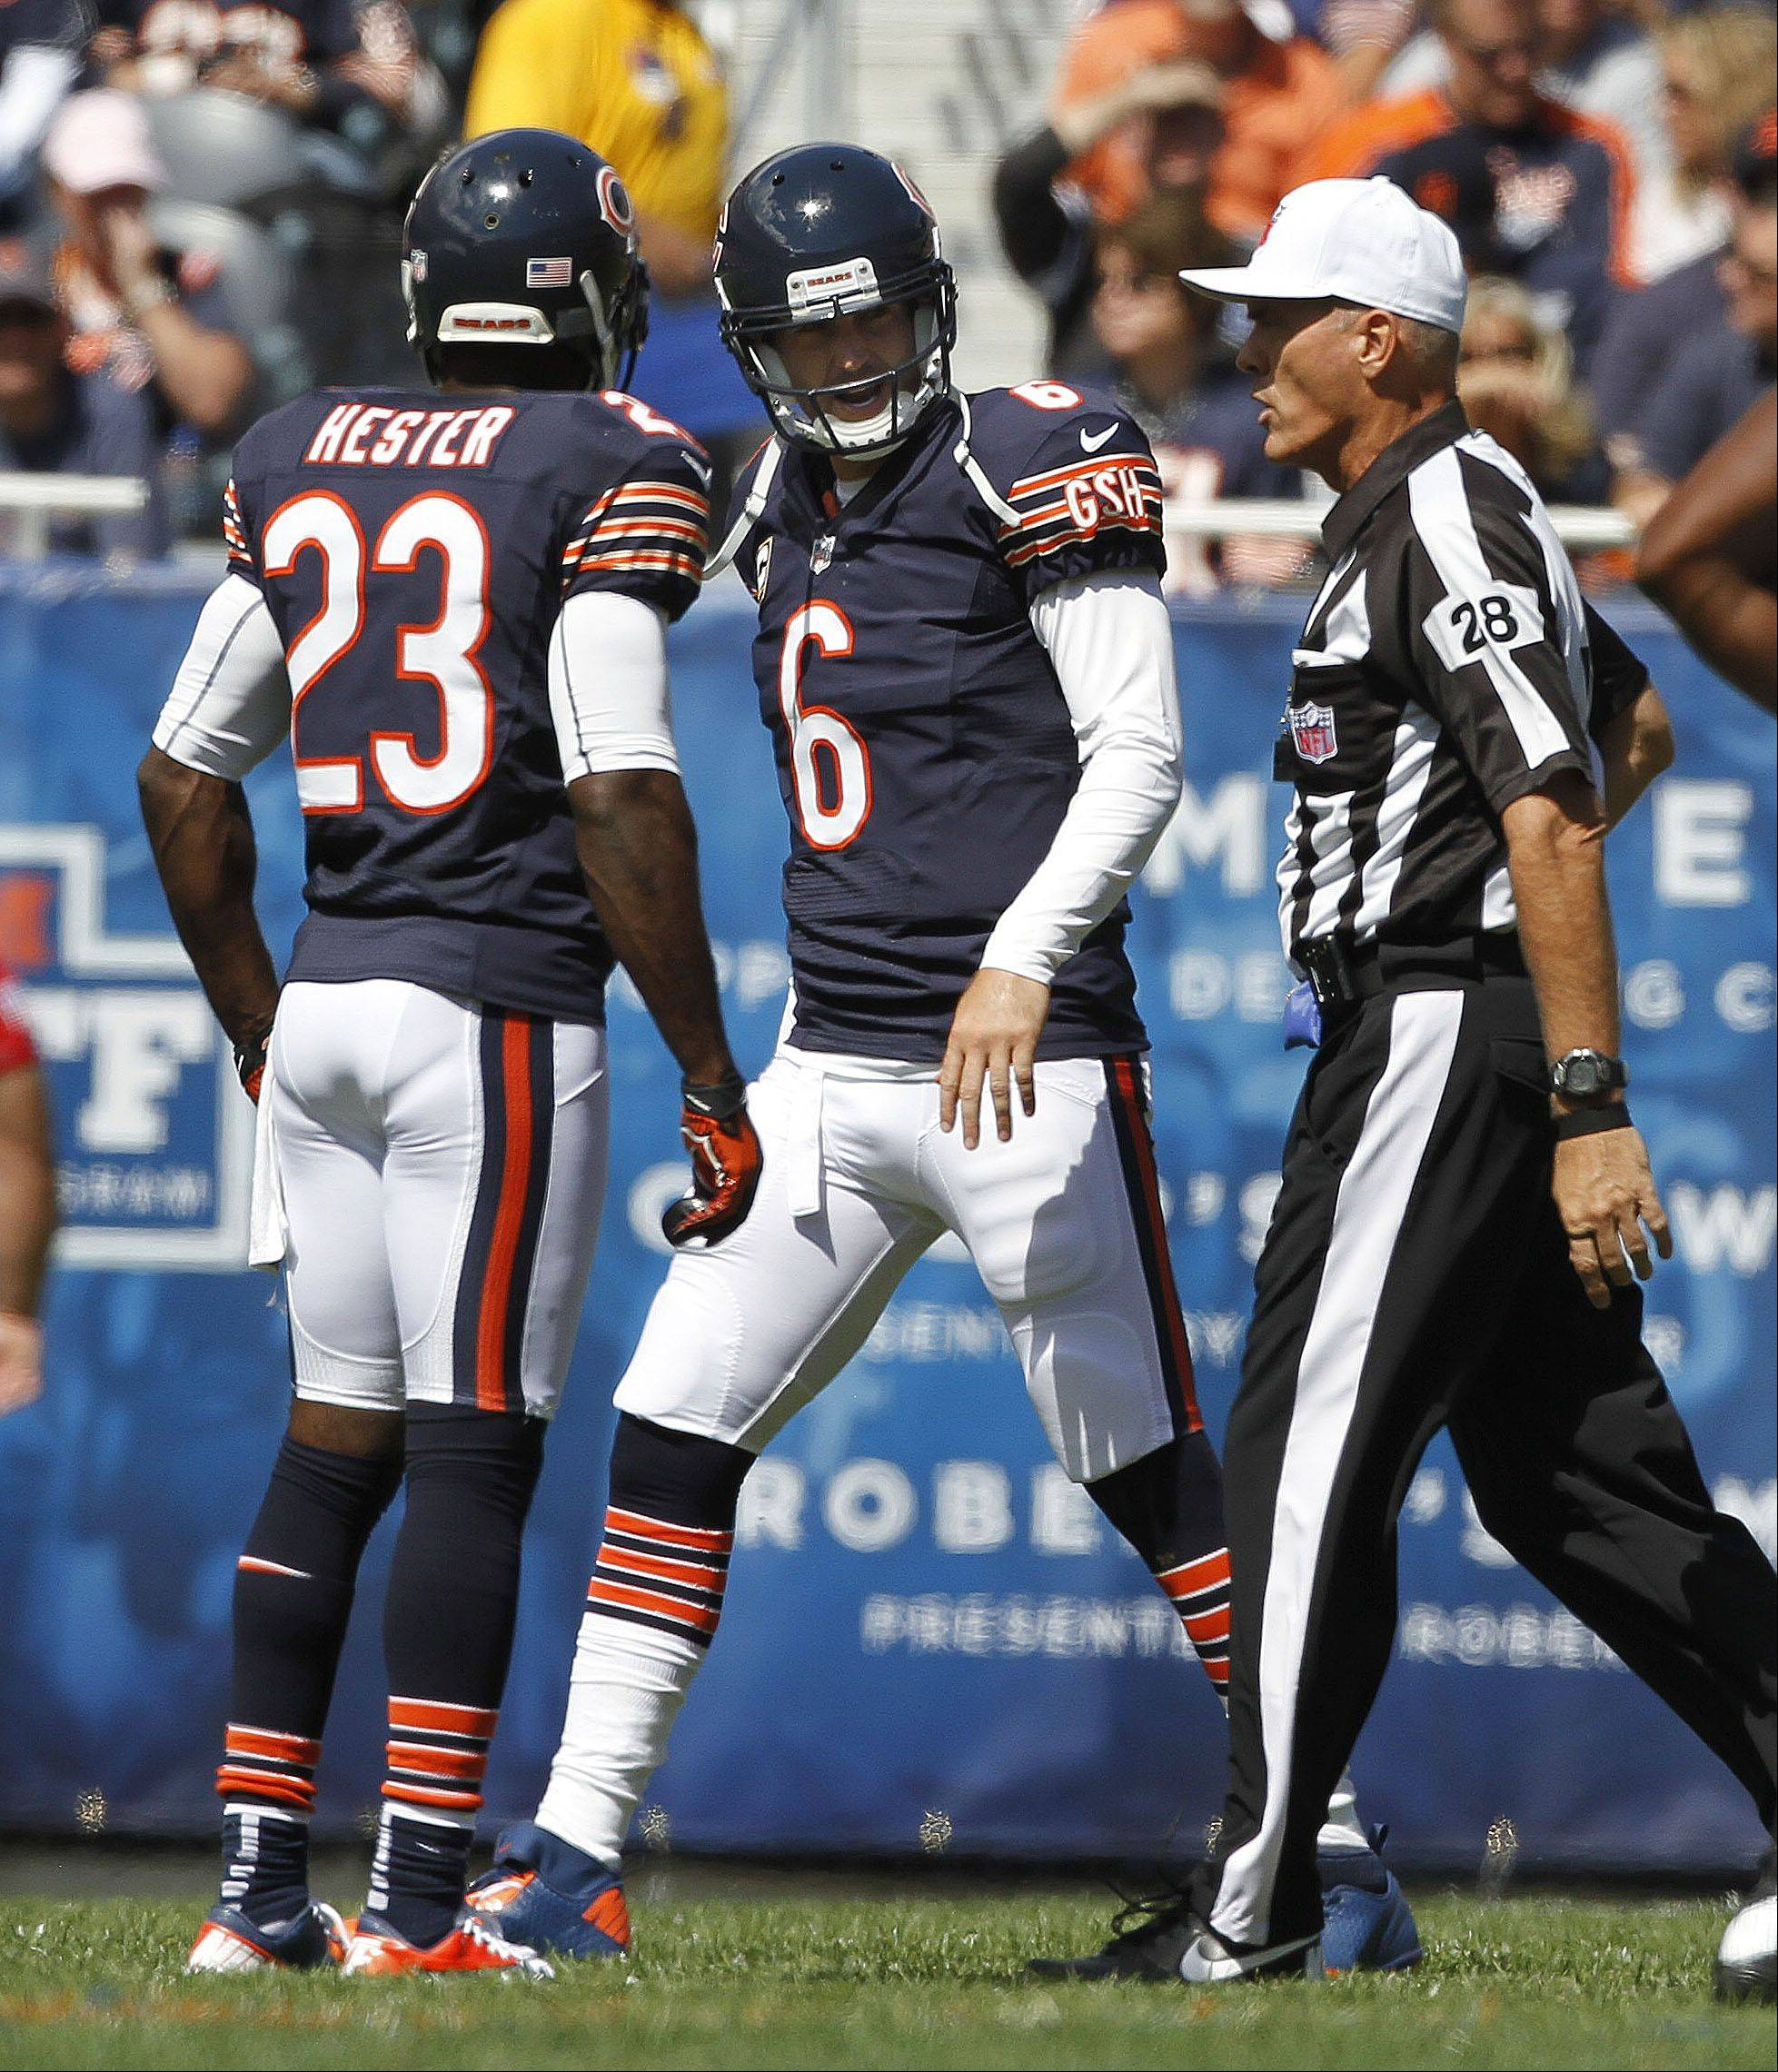 Chicago Bears quarterback Jay Cutler chews out the referee during the Bears season opener.